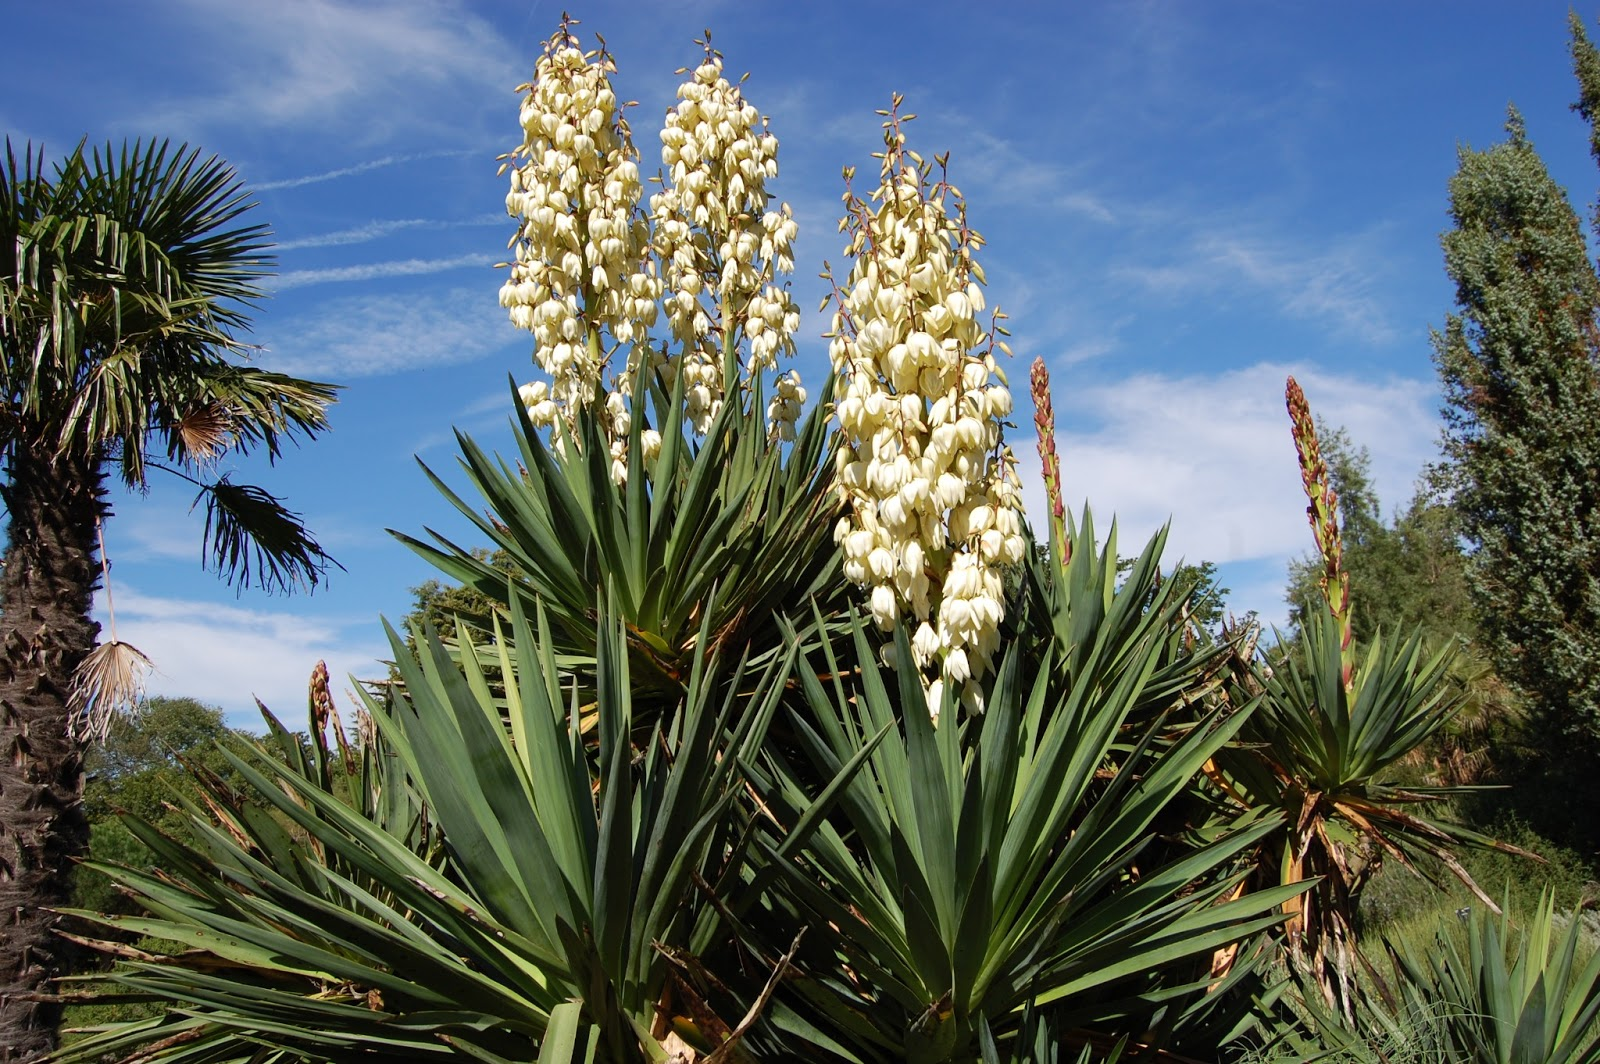 WHAT IS A YUCCA PLANT?